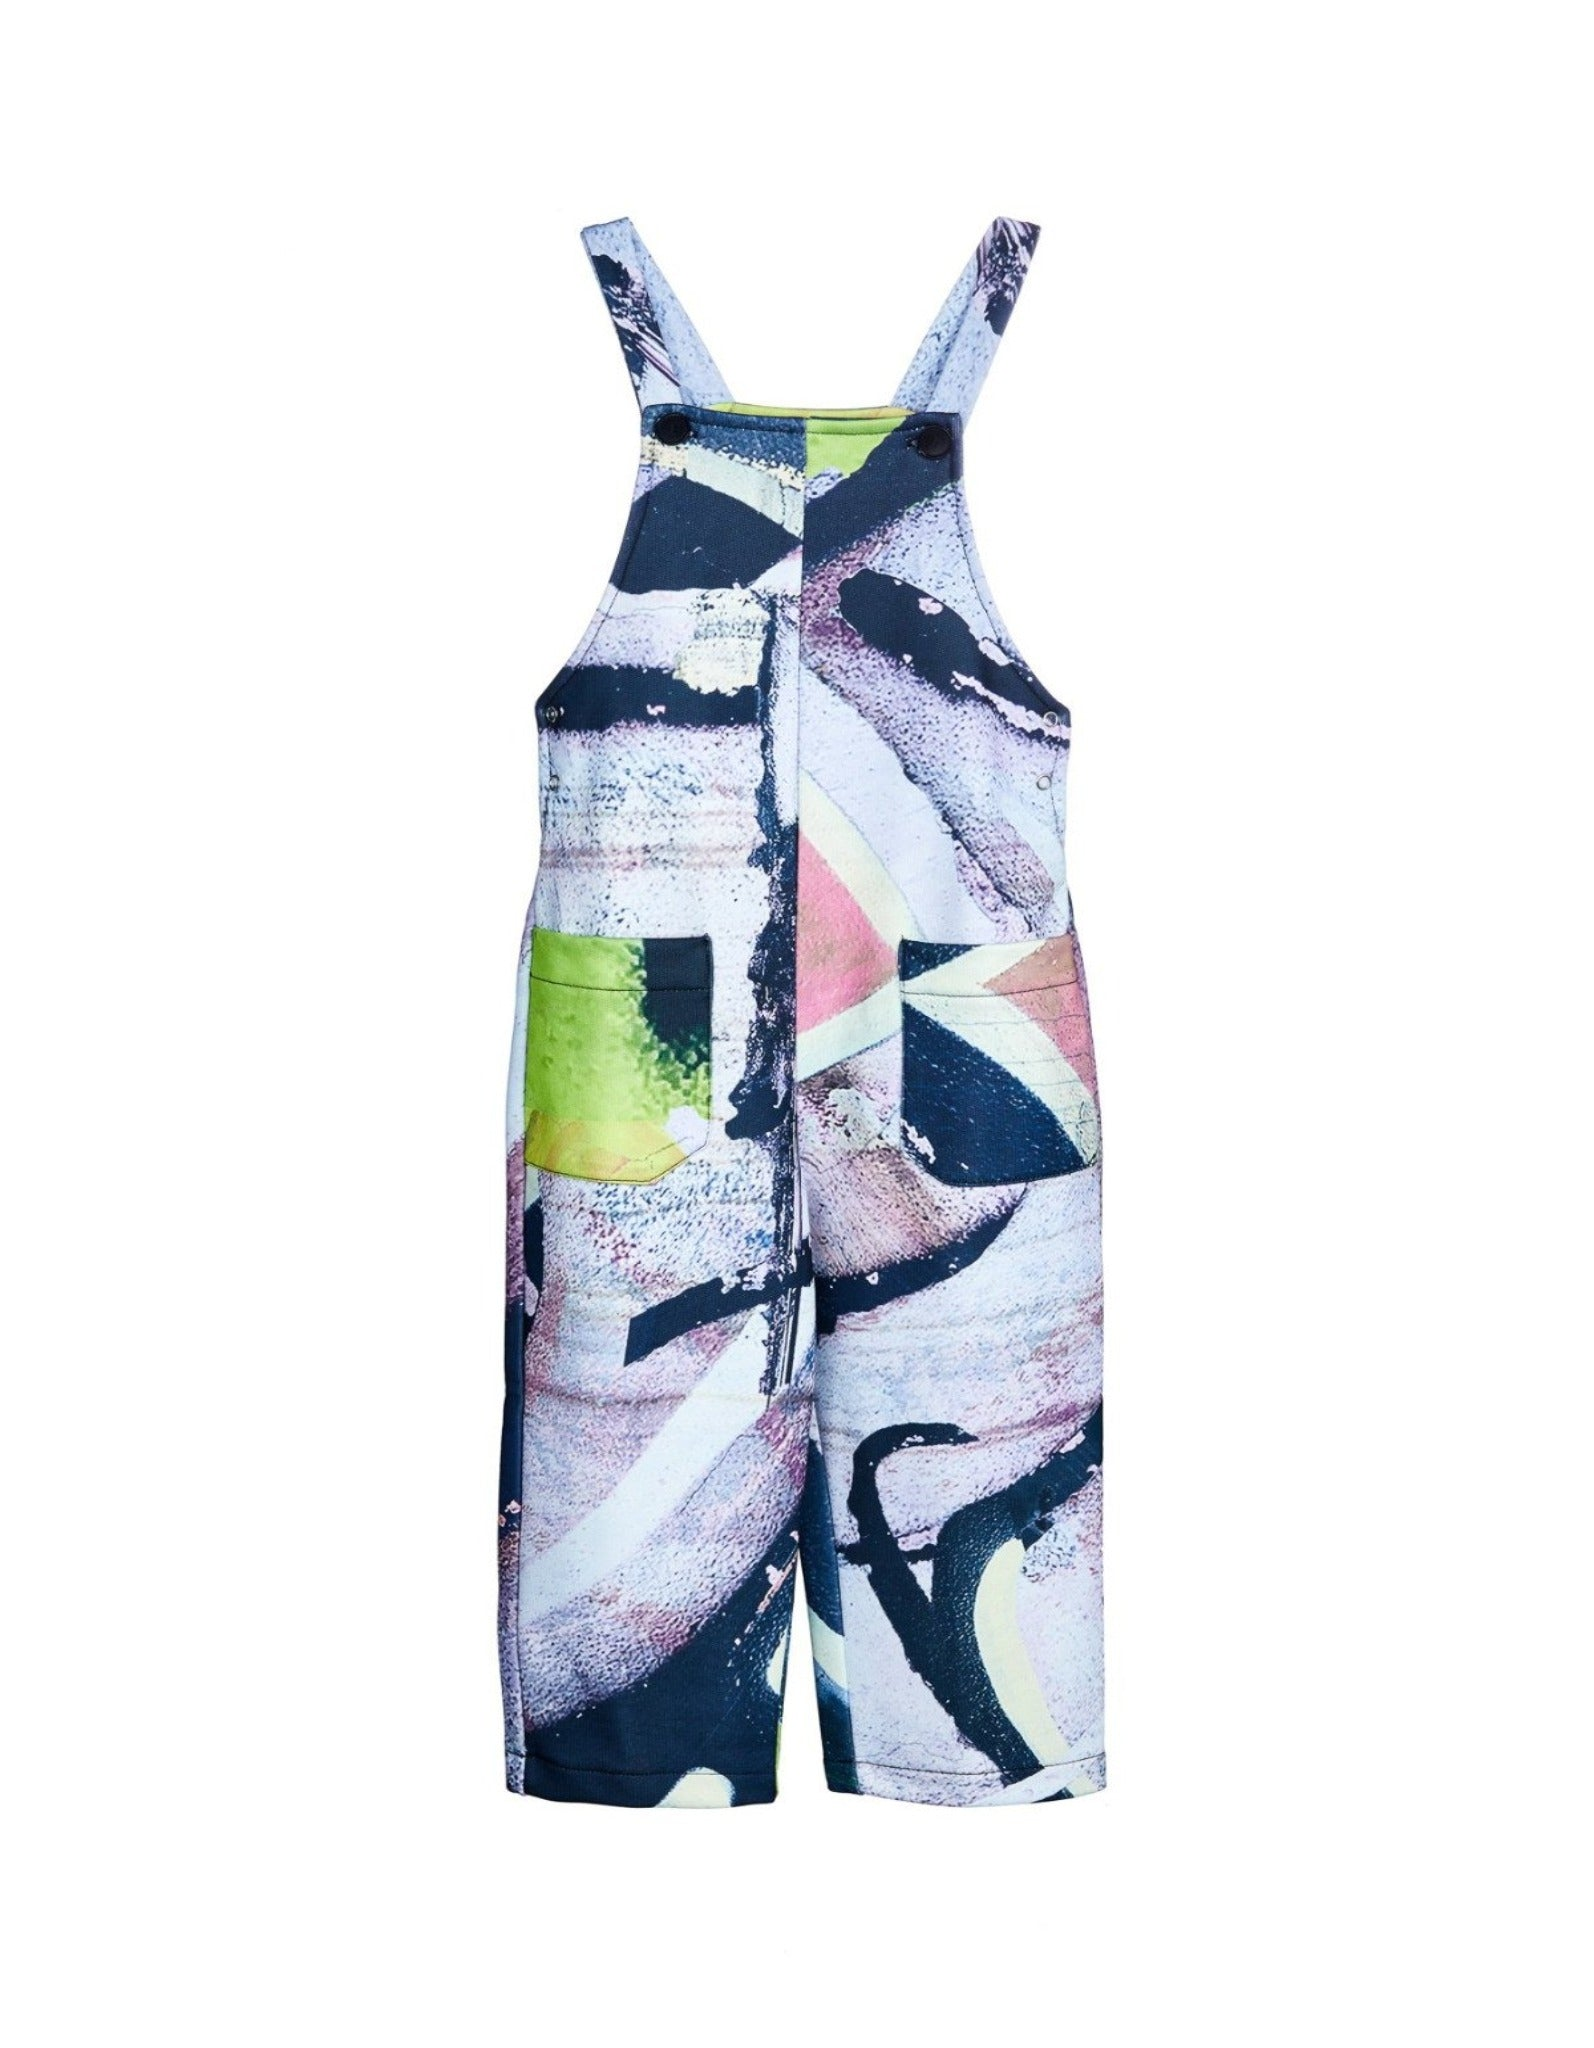 M'A KIDS JUMPSUIT IN PASTEL PRINT